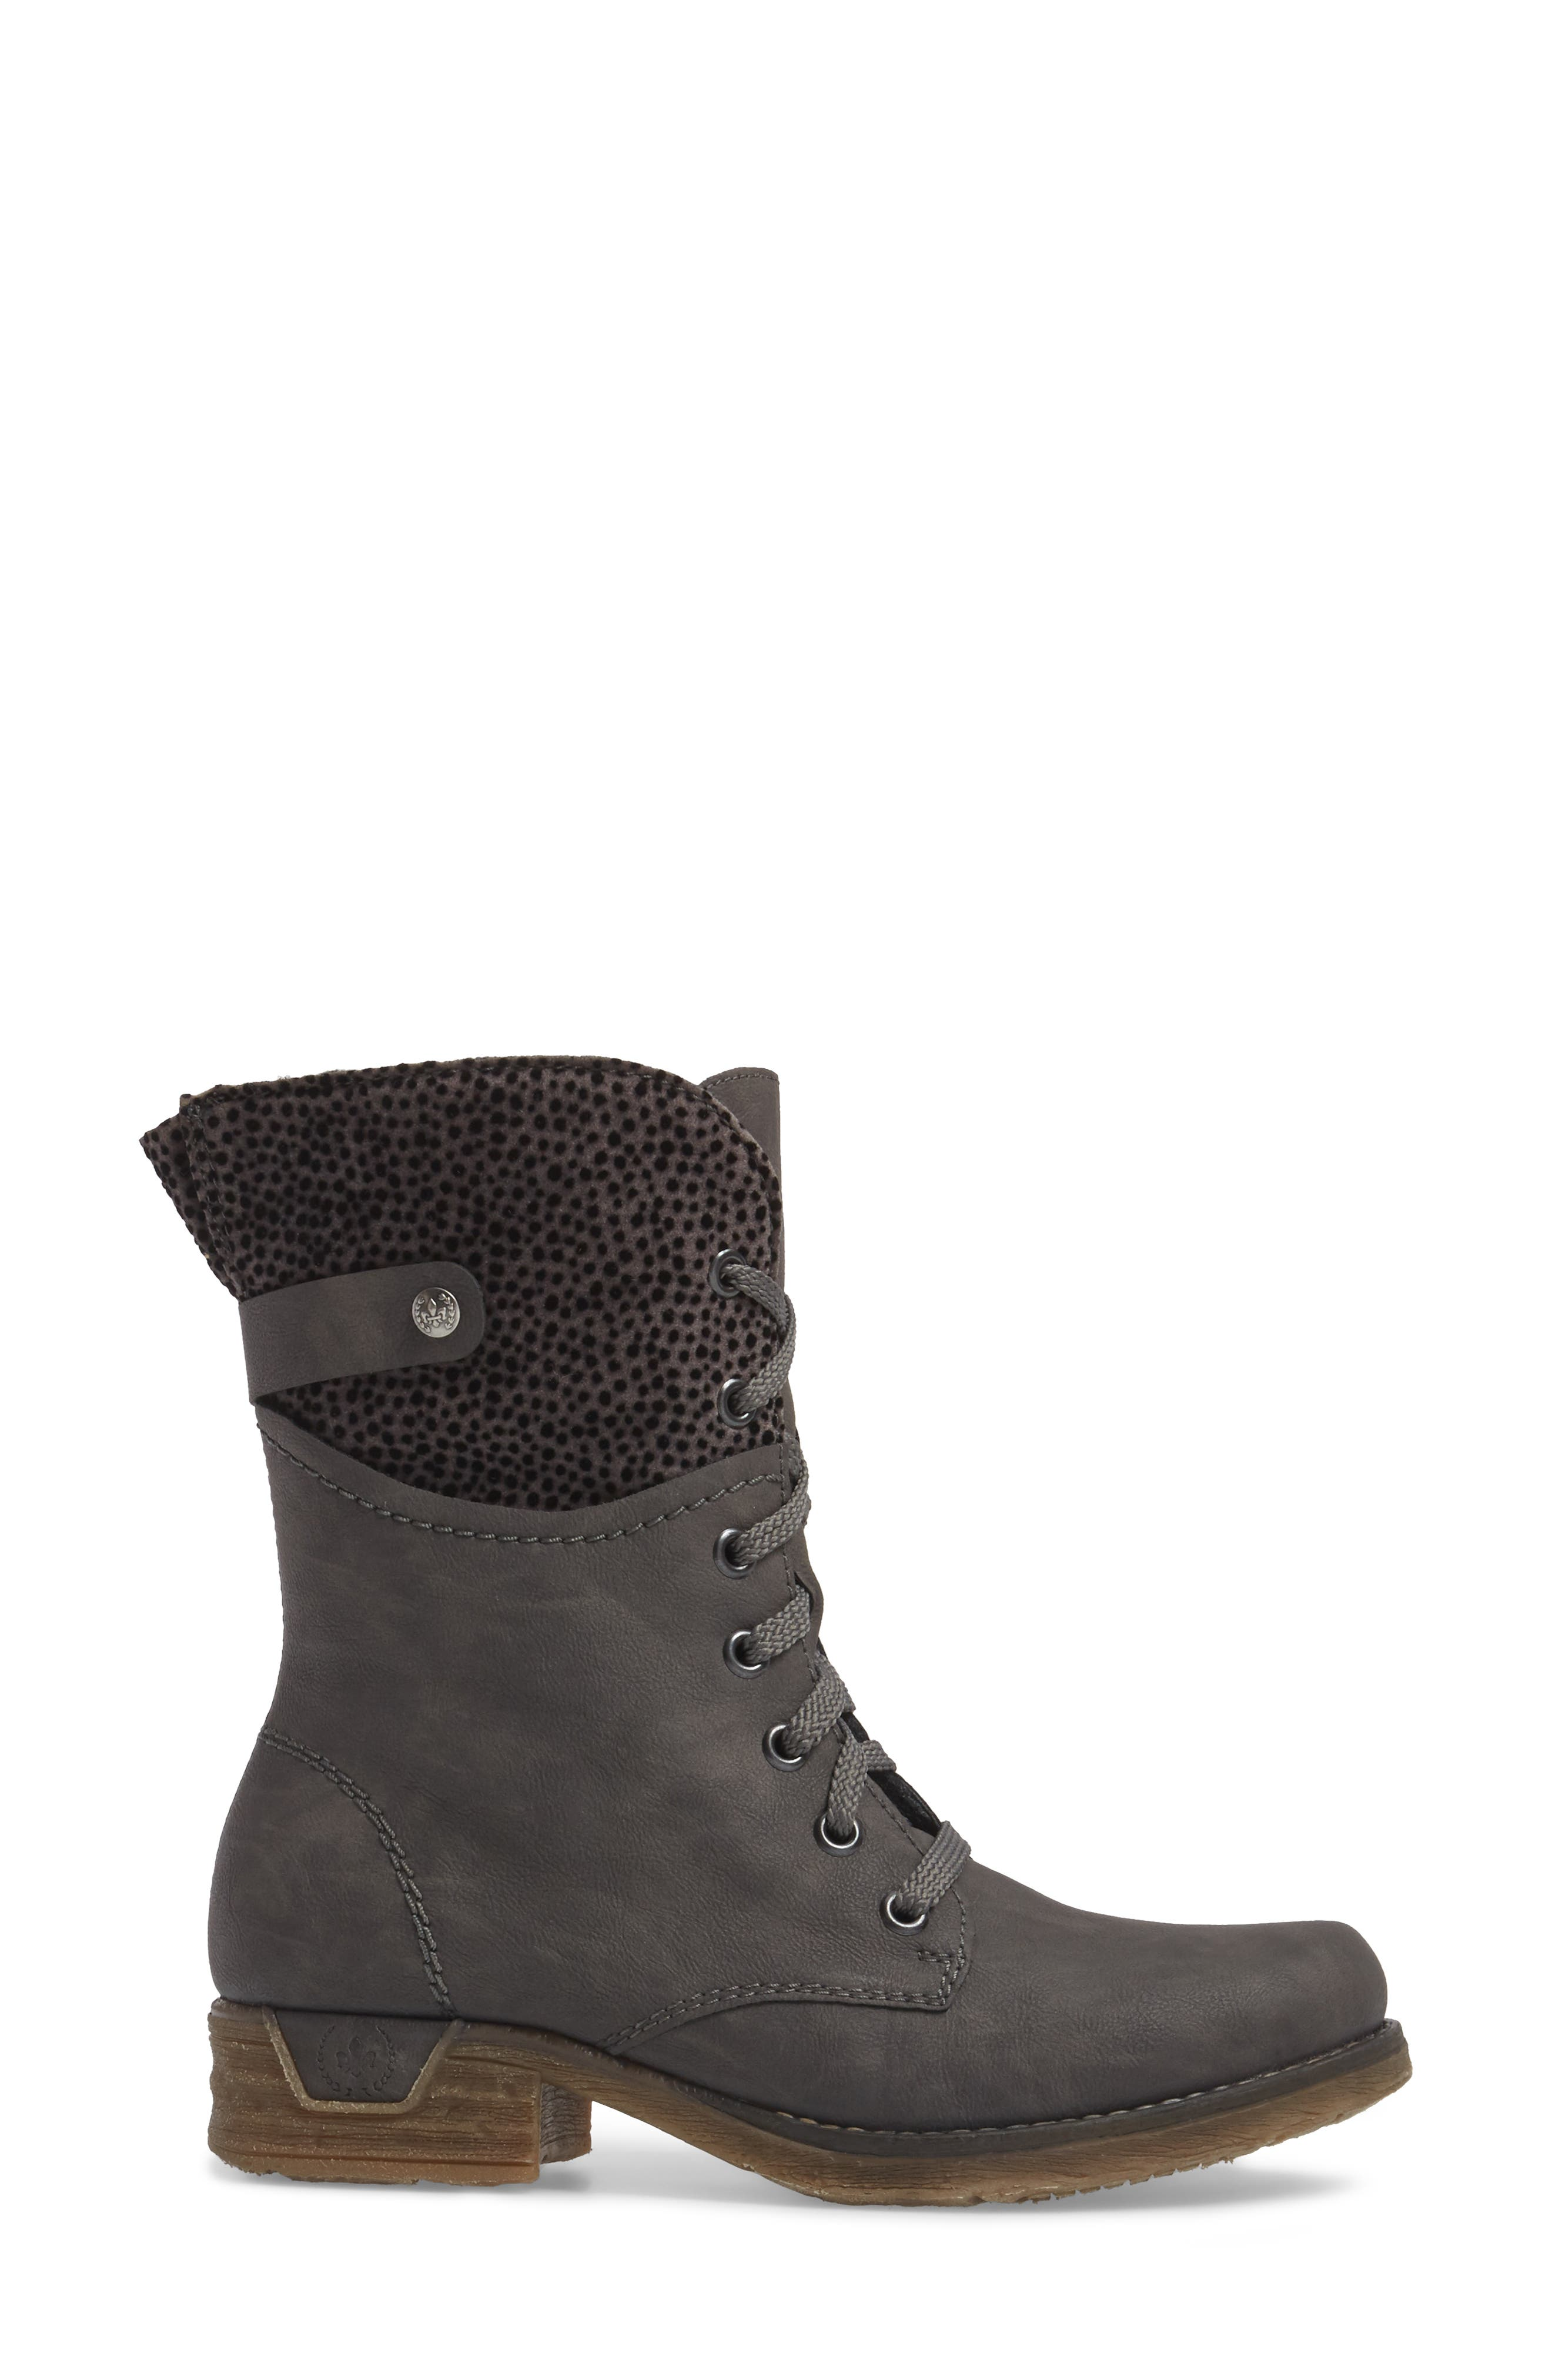 'Fee 04' Lace-Up Boot,                             Alternate thumbnail 3, color,                             FUMO FAUX LEATHER